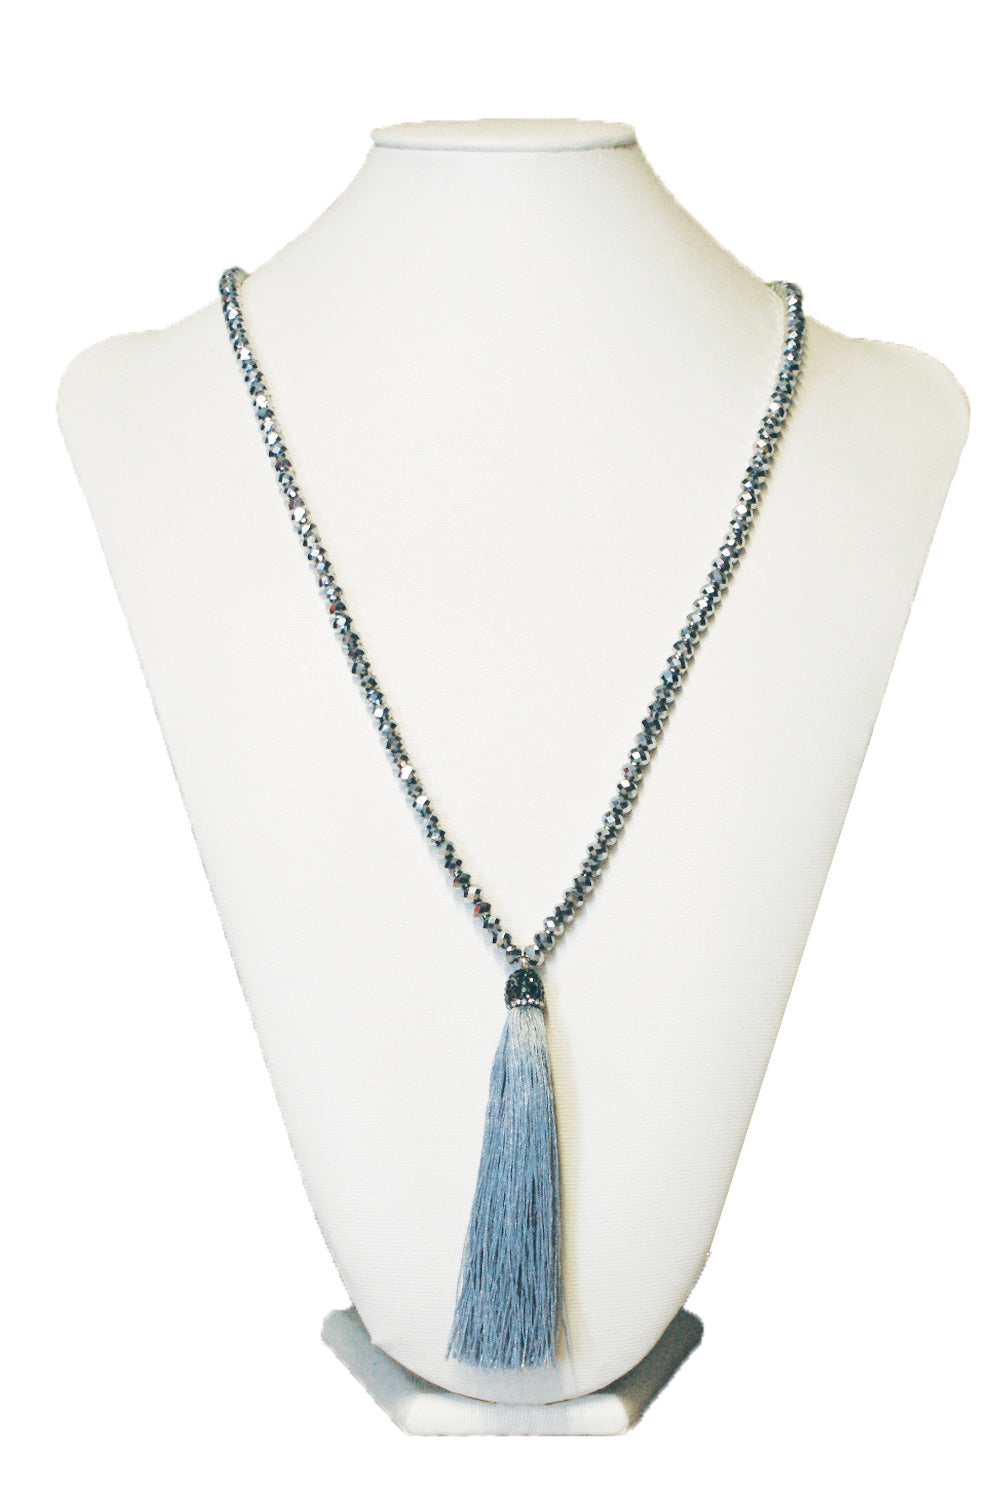 Tina Tassel Necklace | Annah Stretton | Designer Accessories